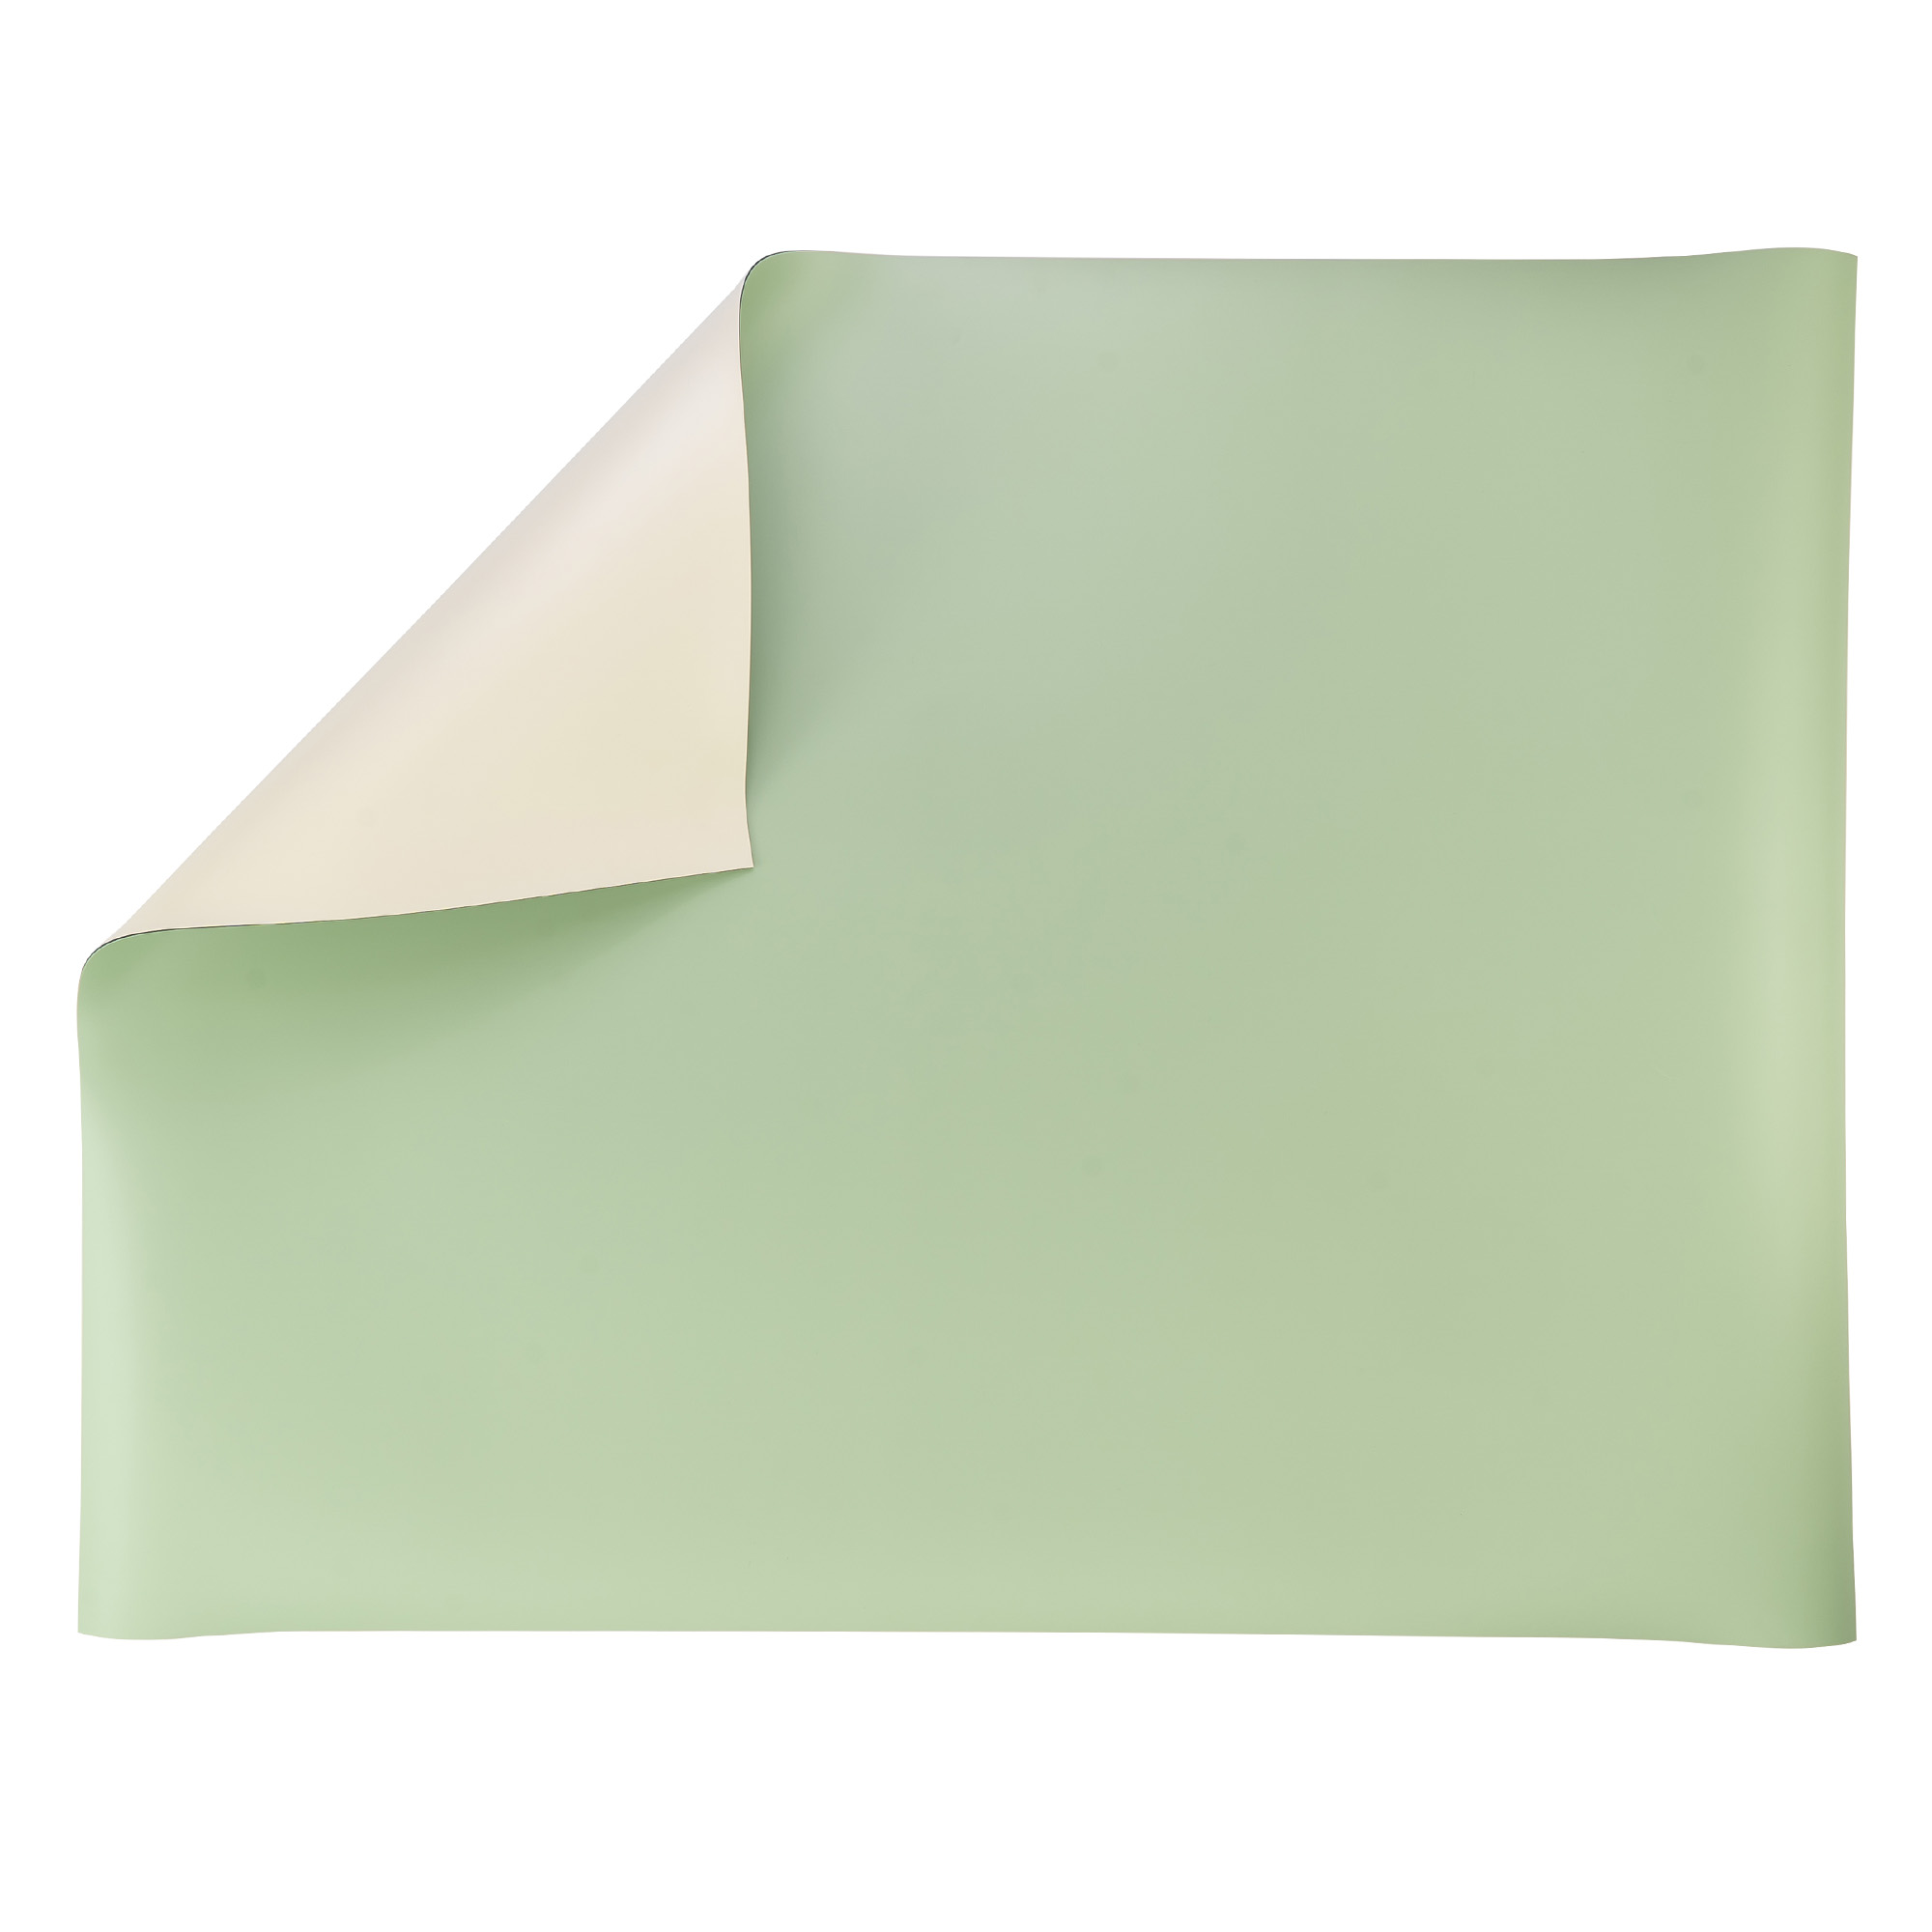 Pacific Arc Vinyl board covers, drafting board cover in sheets and rolls. the best drafting board cover on the market. drawing board cover. Green / cream vinyl board cover color